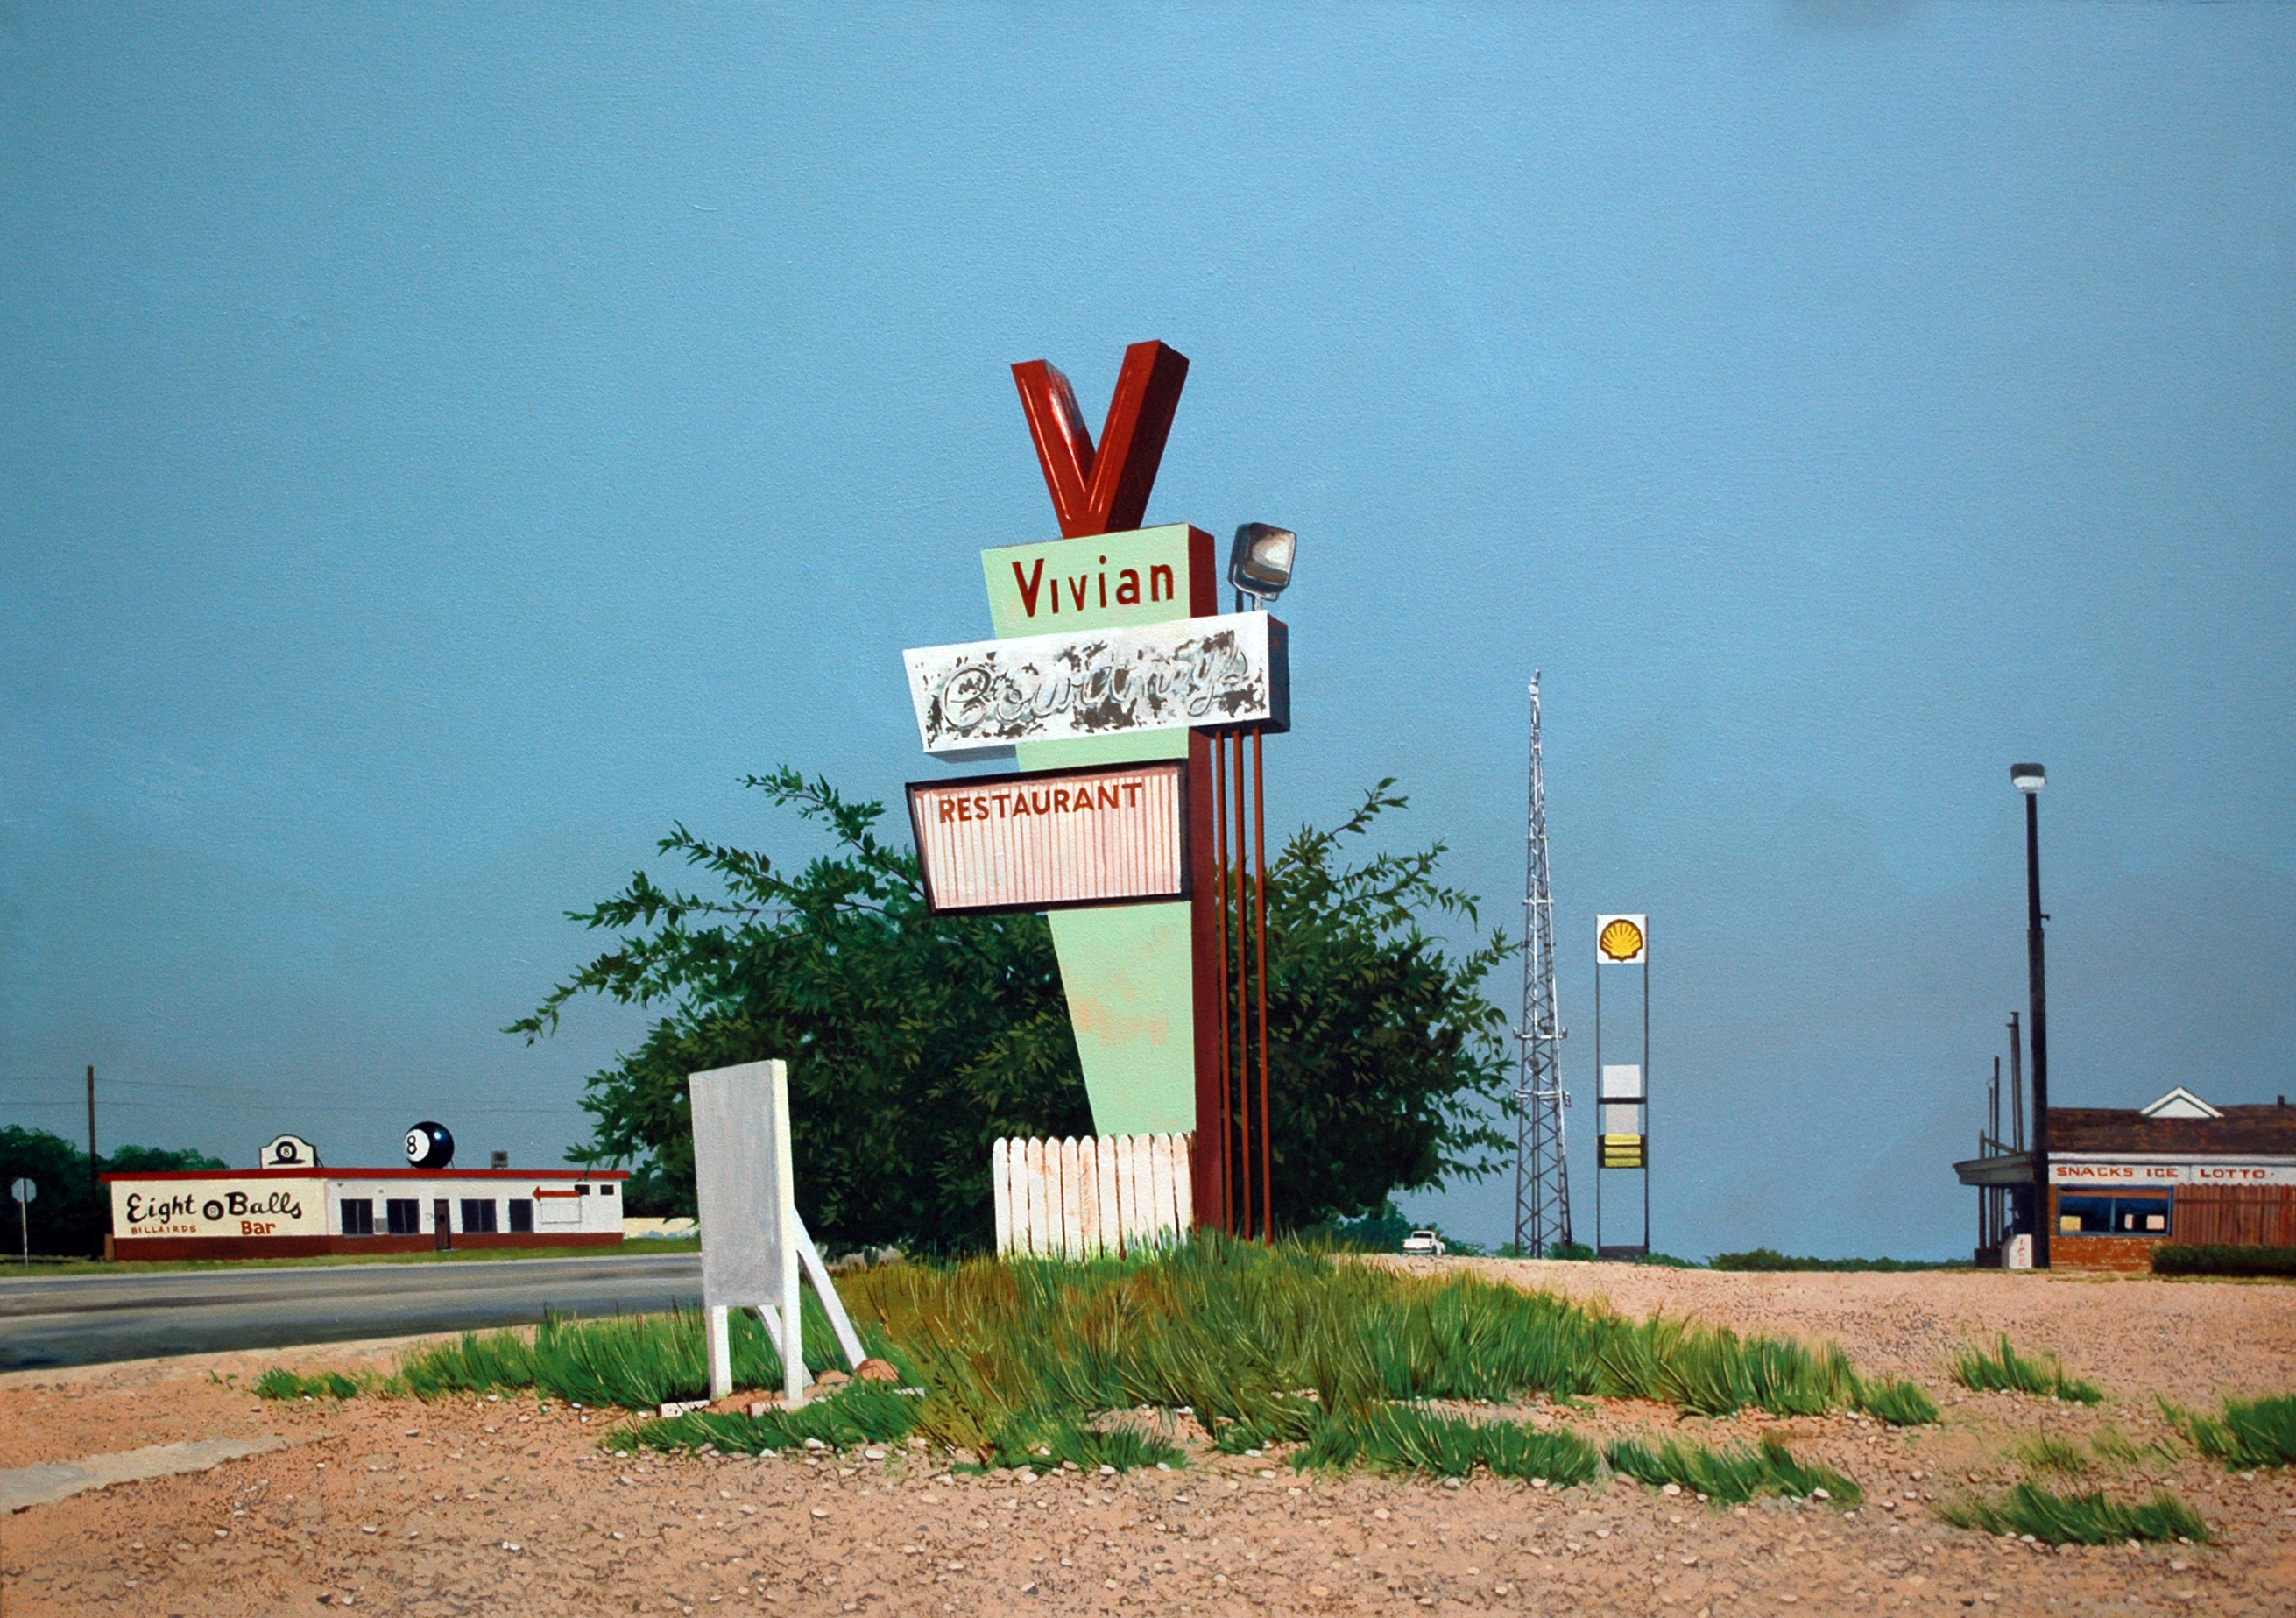 Daniel Blagg, Vivian's, oil on canvas.